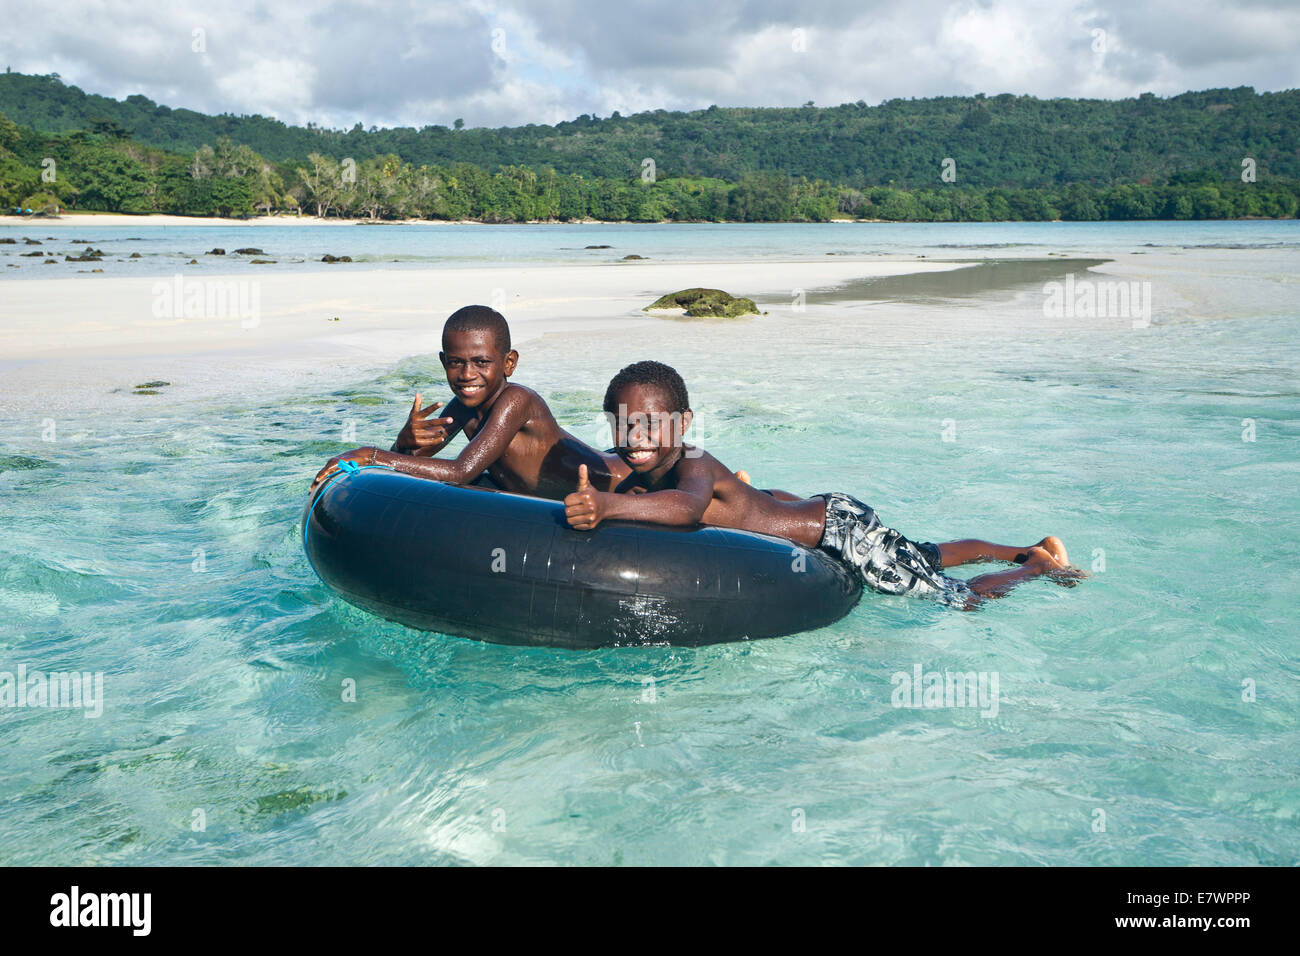 Two boys playing in the clear water, Espiritu Santo, Vanuatu - Stock Image